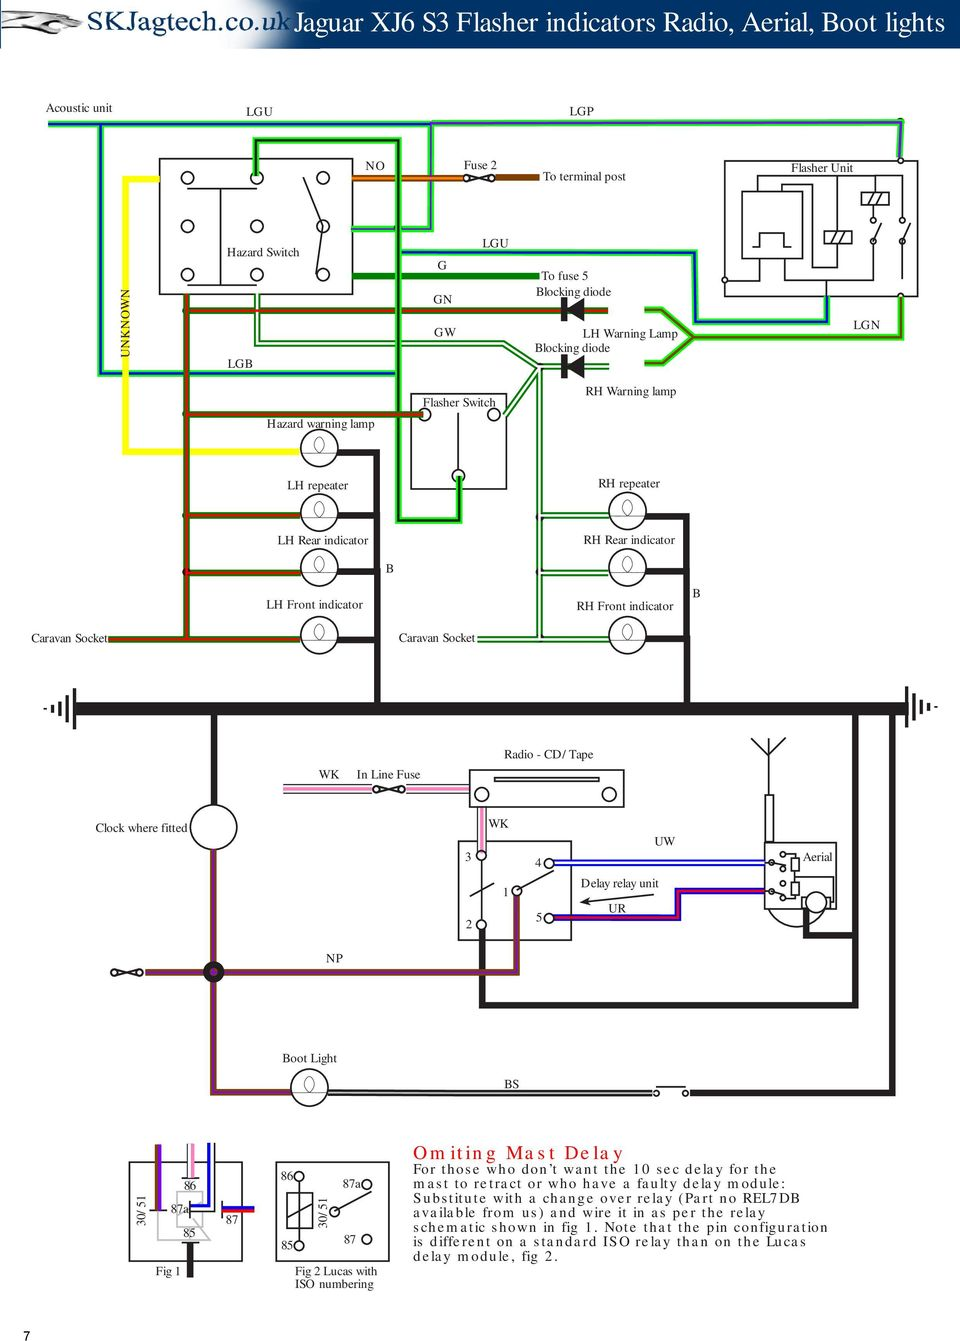 2006 Caravan 2 4 Engine Diagram Jaguar Xj6 Series 3 Schematic Drawings Pdf Cd Tape Clock Where Fitted Wk 1 5 Delay Relay Unit Ur